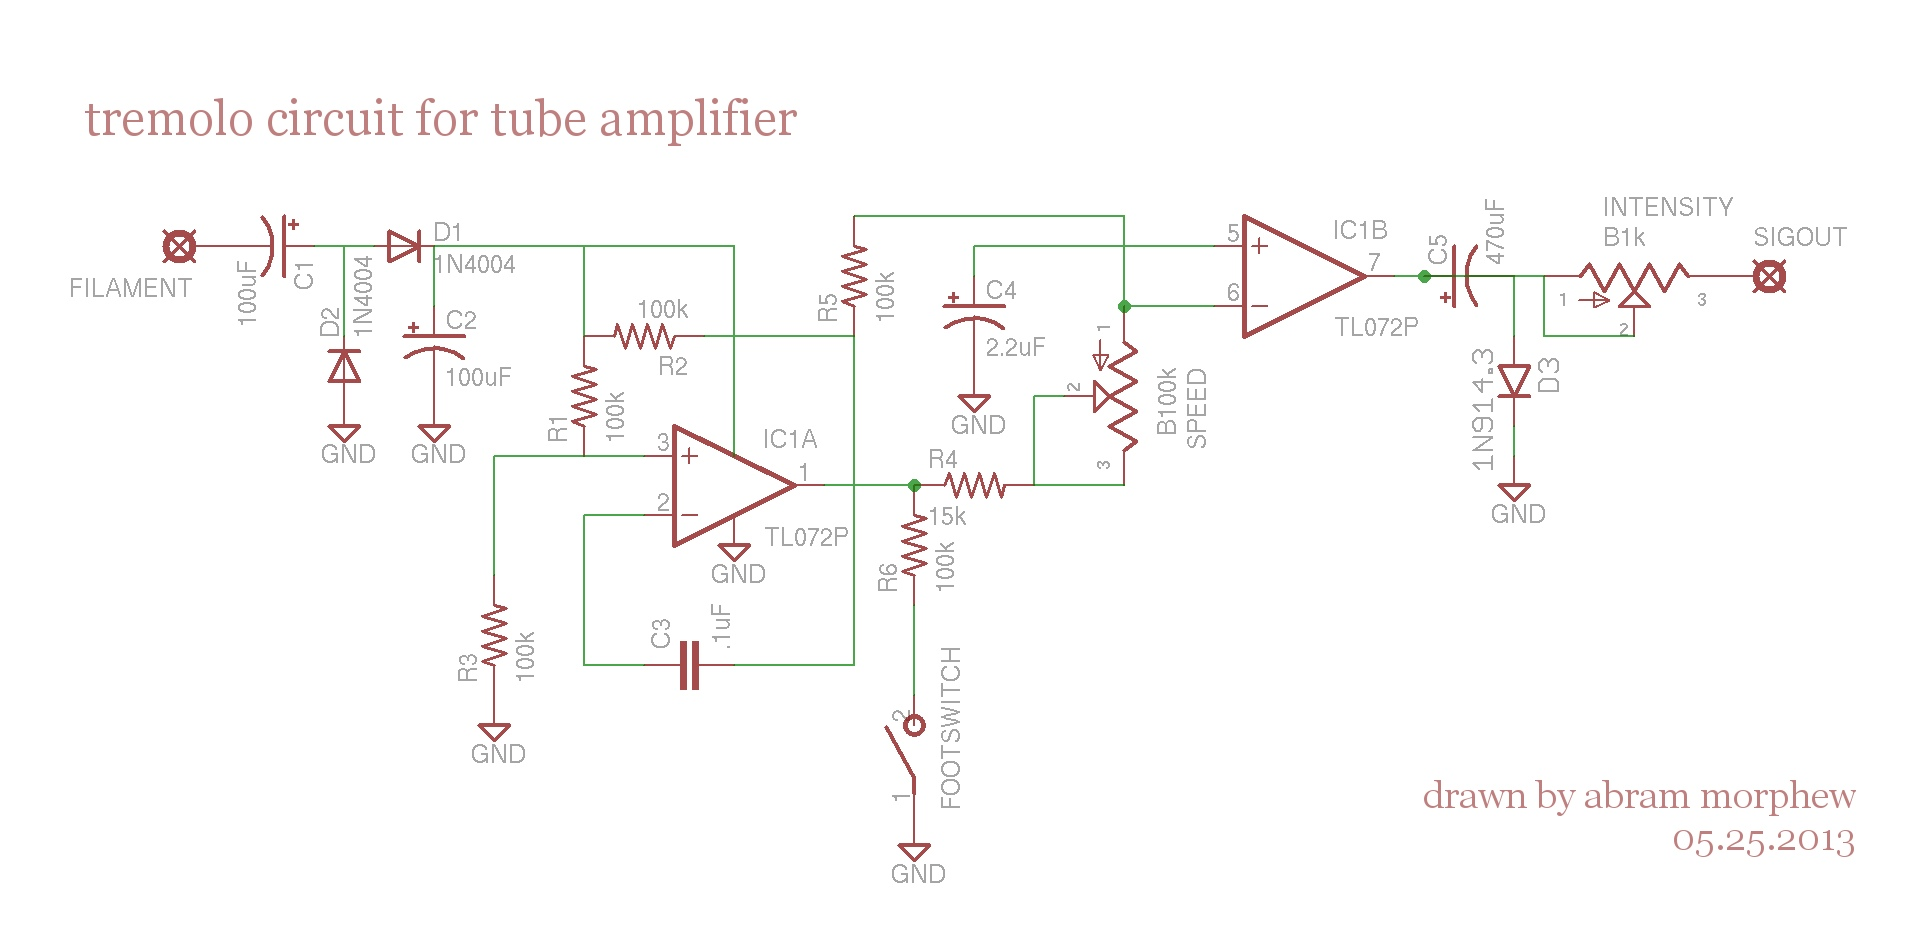 Simple Lm386 Circuit Modern Design Of Wiring Diagram Audio Using Tube Notes To Self Amp Amplifier